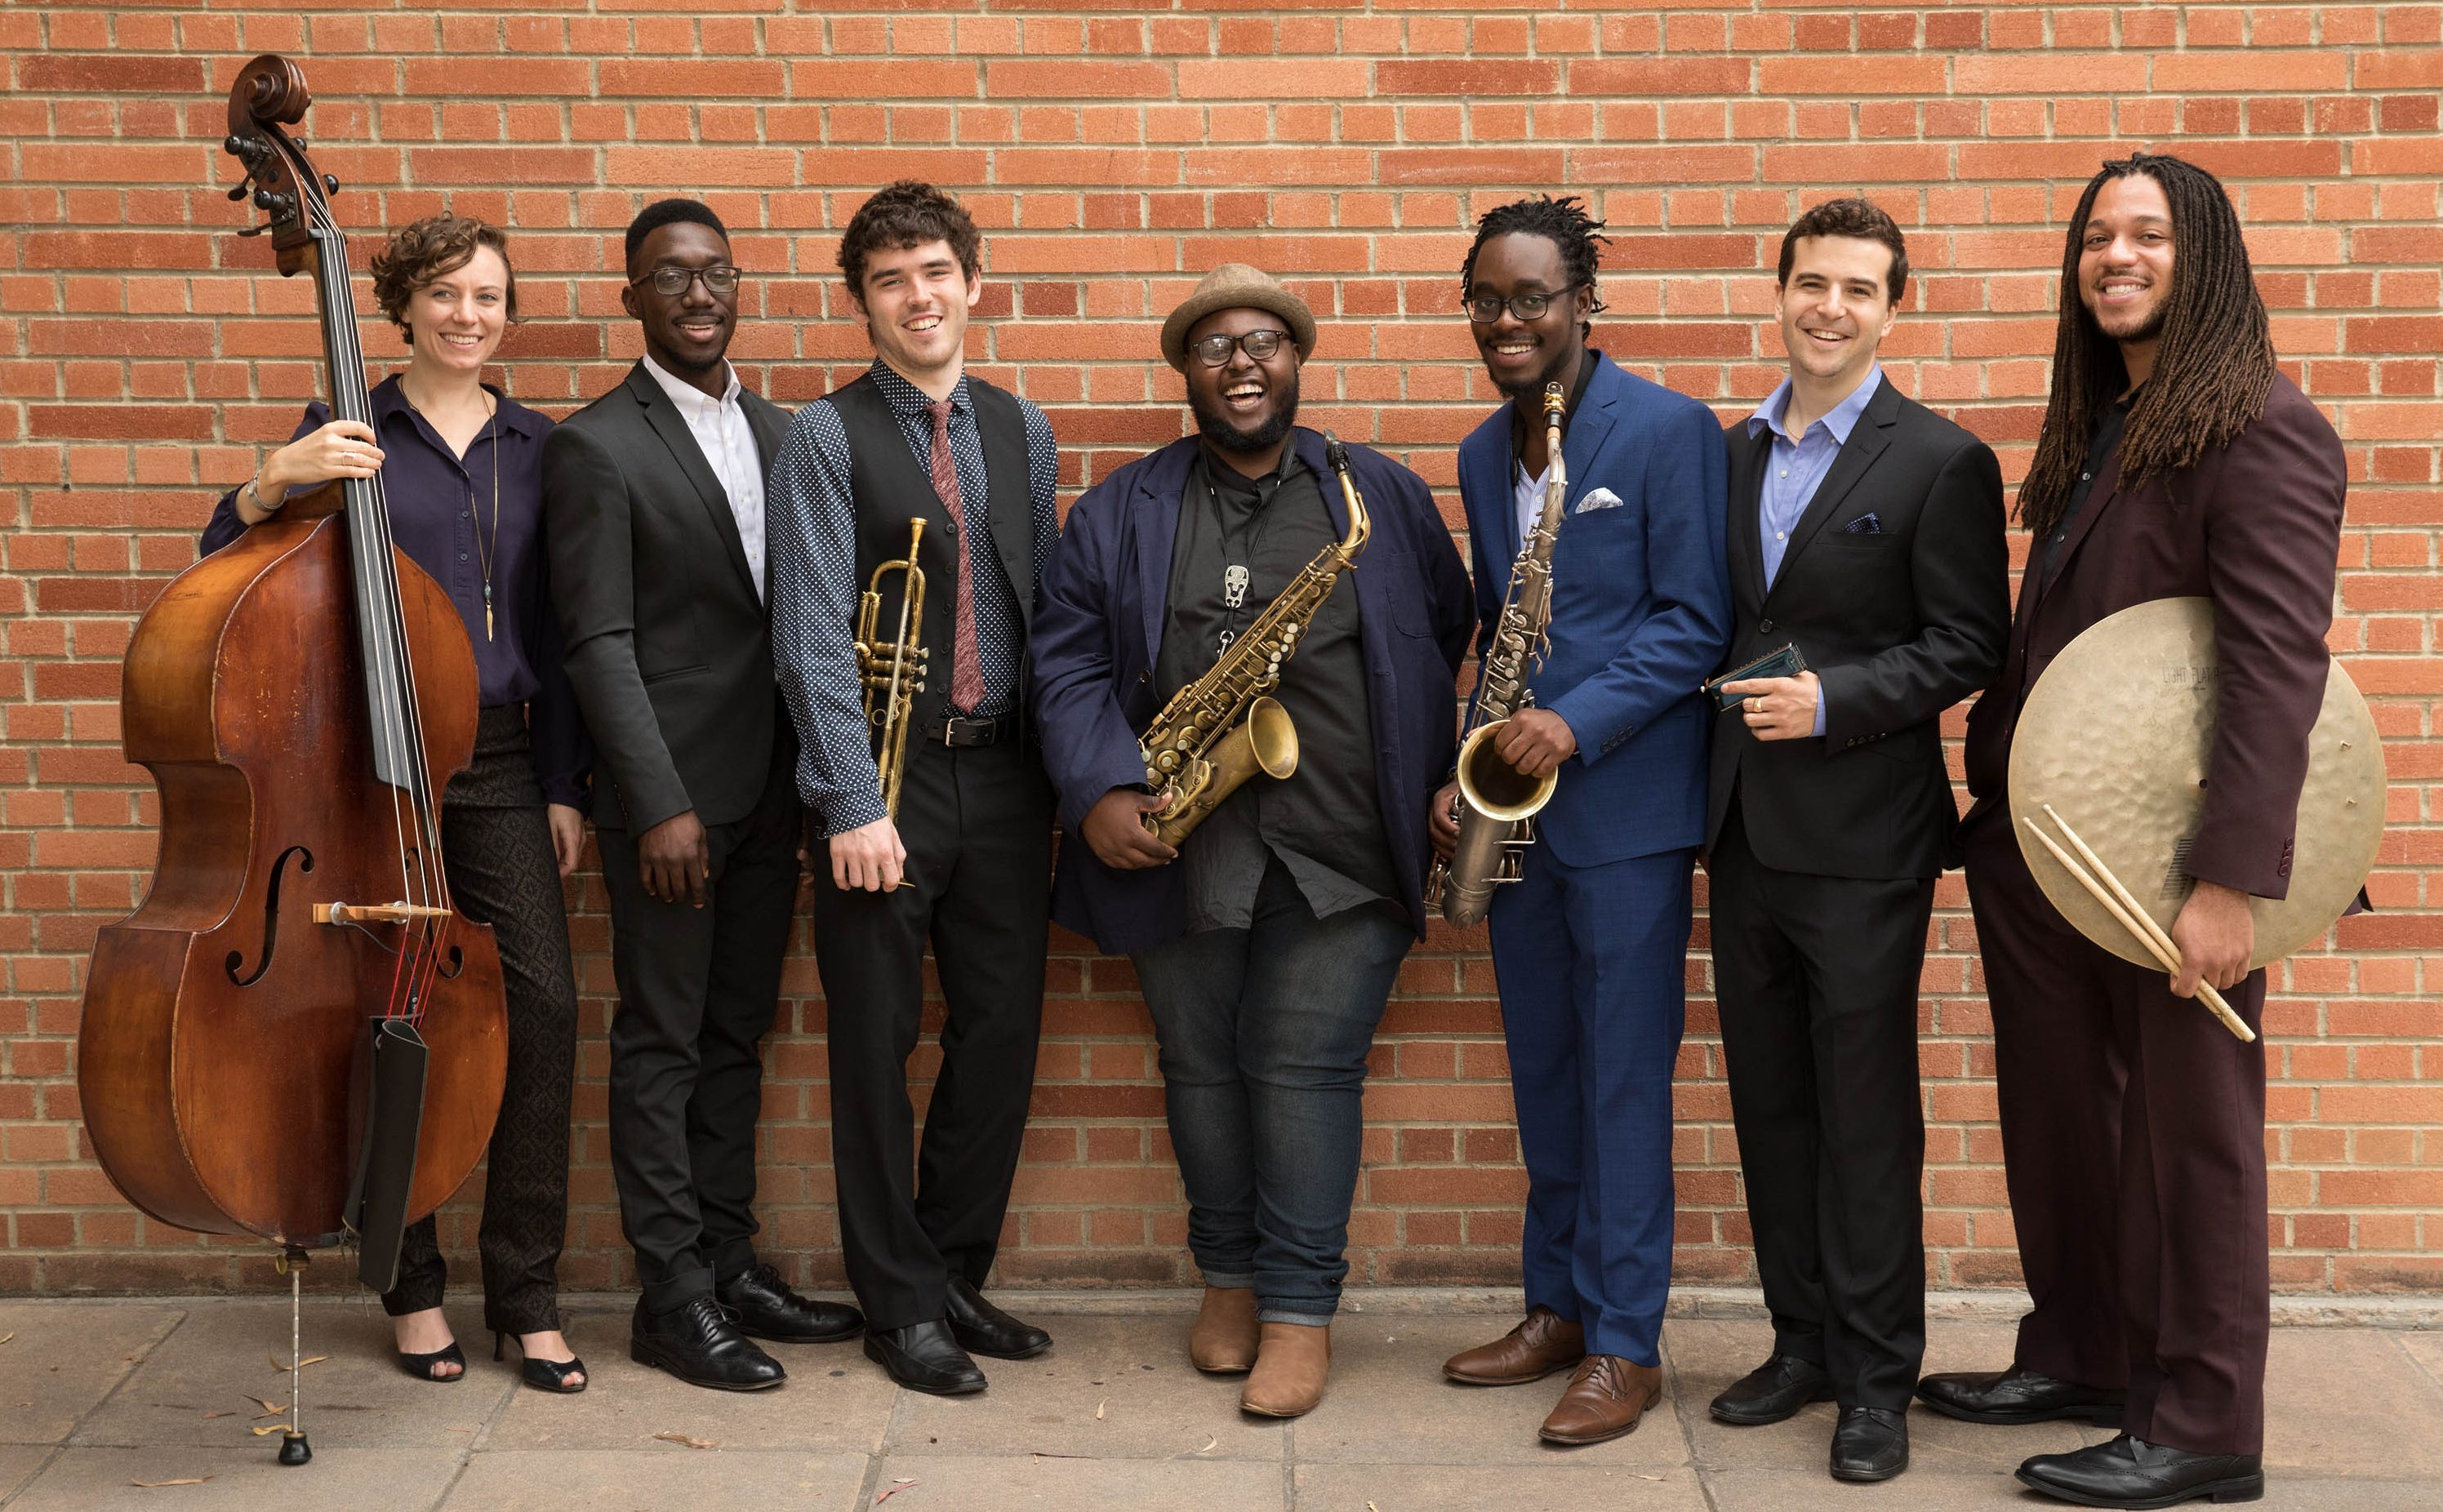 The Thelonious Monk Institute of Jazz Performance Class of 2020 (from left to right): Emma Dayhuff, Paul Cornish, Aidan Lombard, Lenard Simpson, Chris Lewis, Roni Eytan and Malachi Whitson